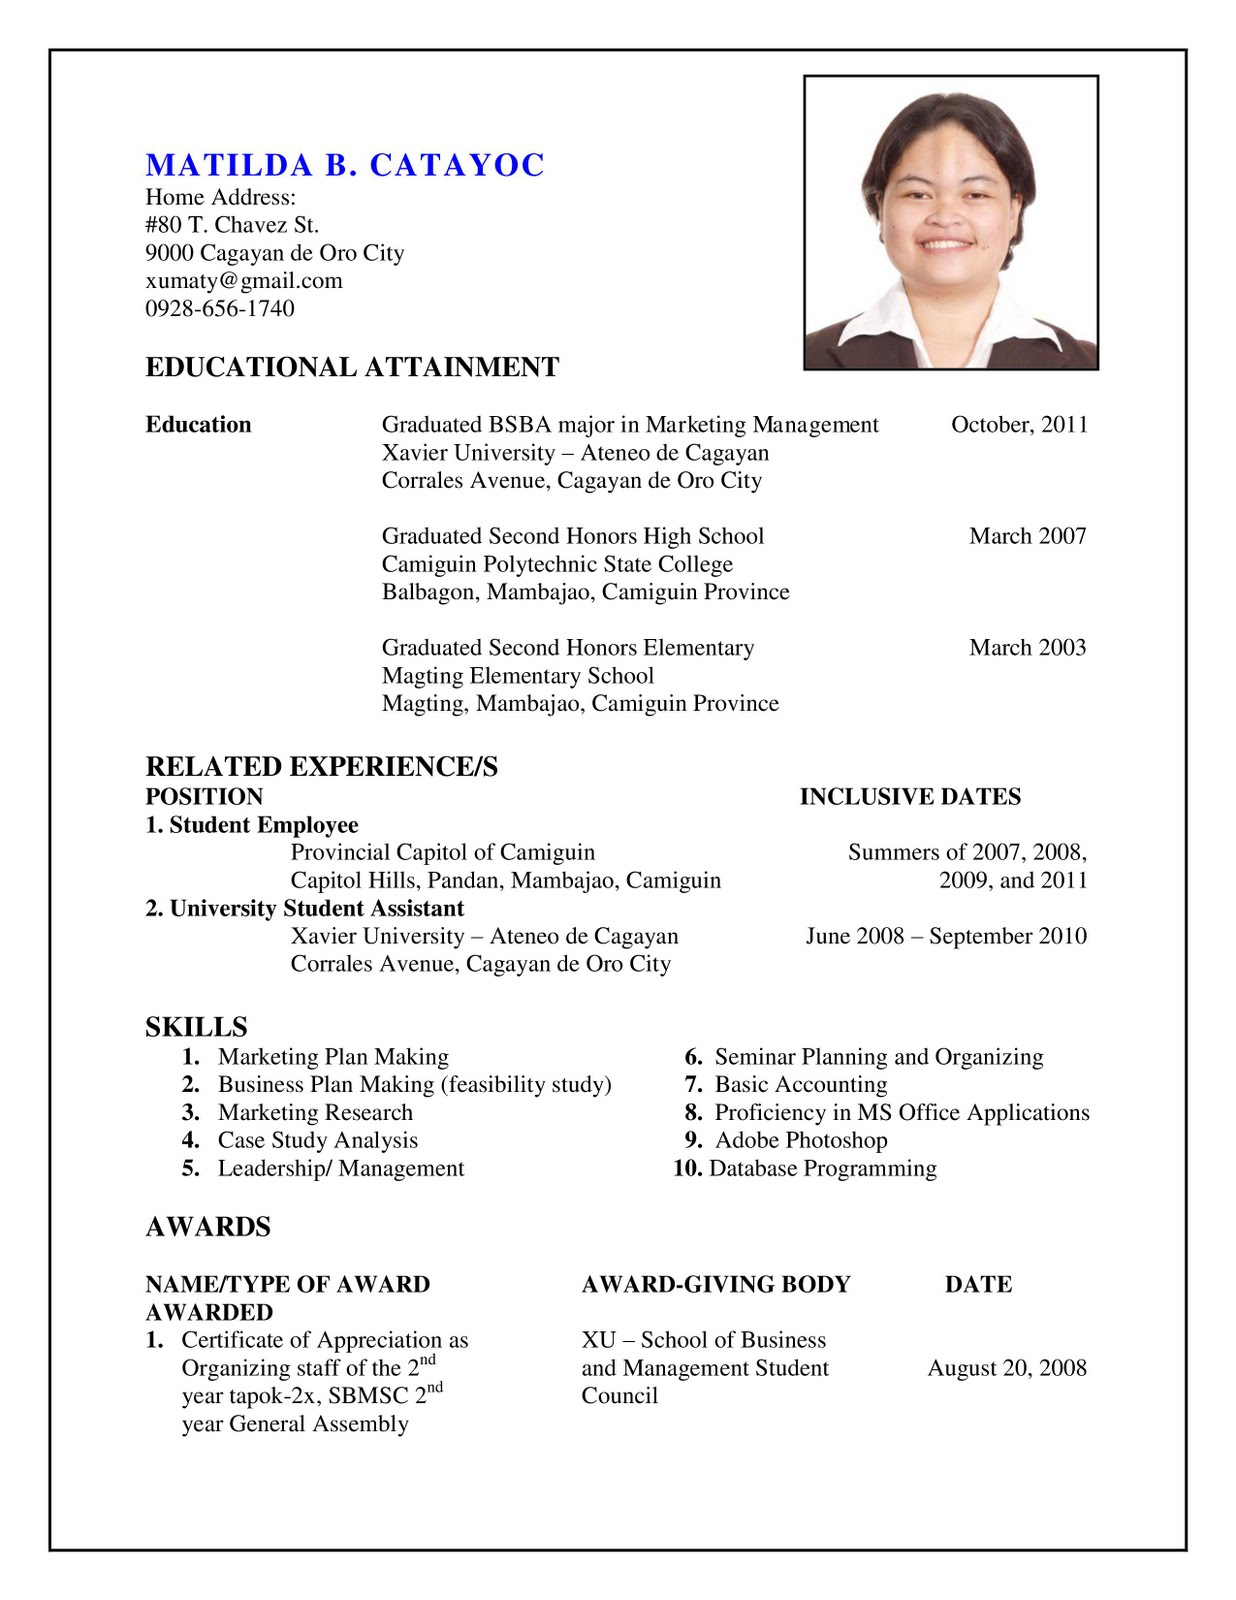 i need help building my resume resume templates i need help building my resume resume writing resume examples cover letters how do i do